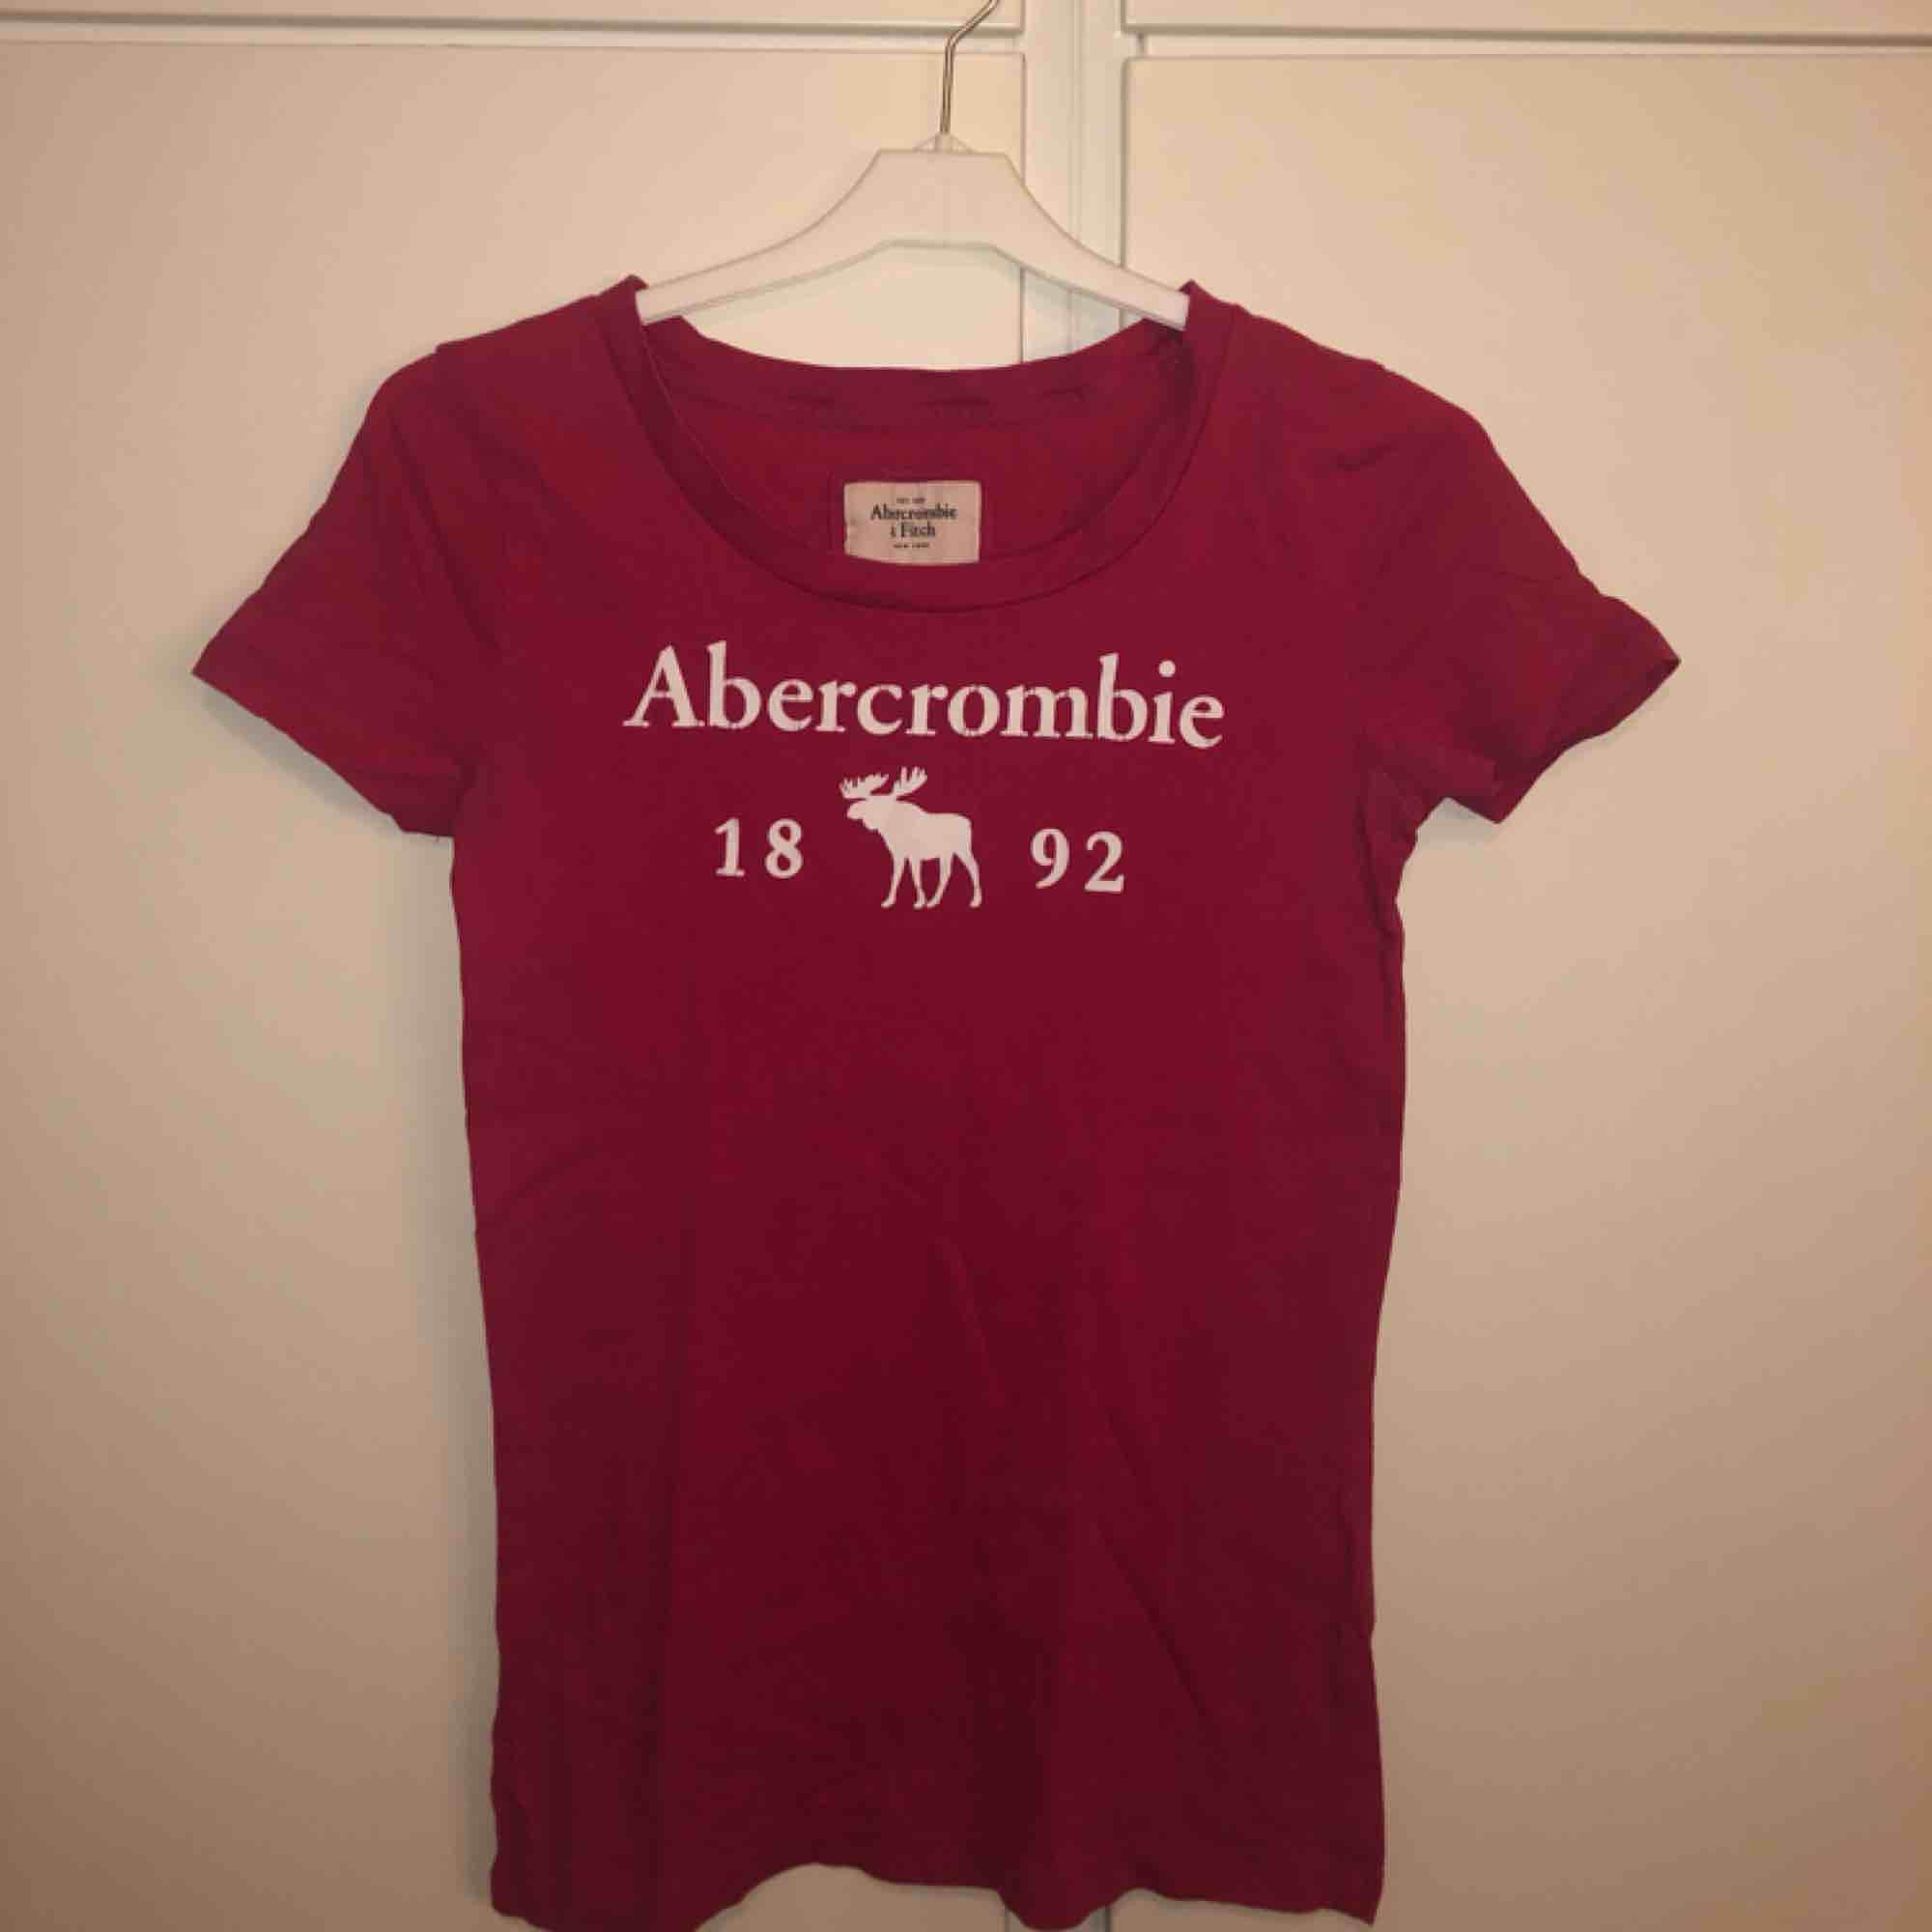 Abercromie and fitch tröja. Priset kan diskuteras. T-shirts.